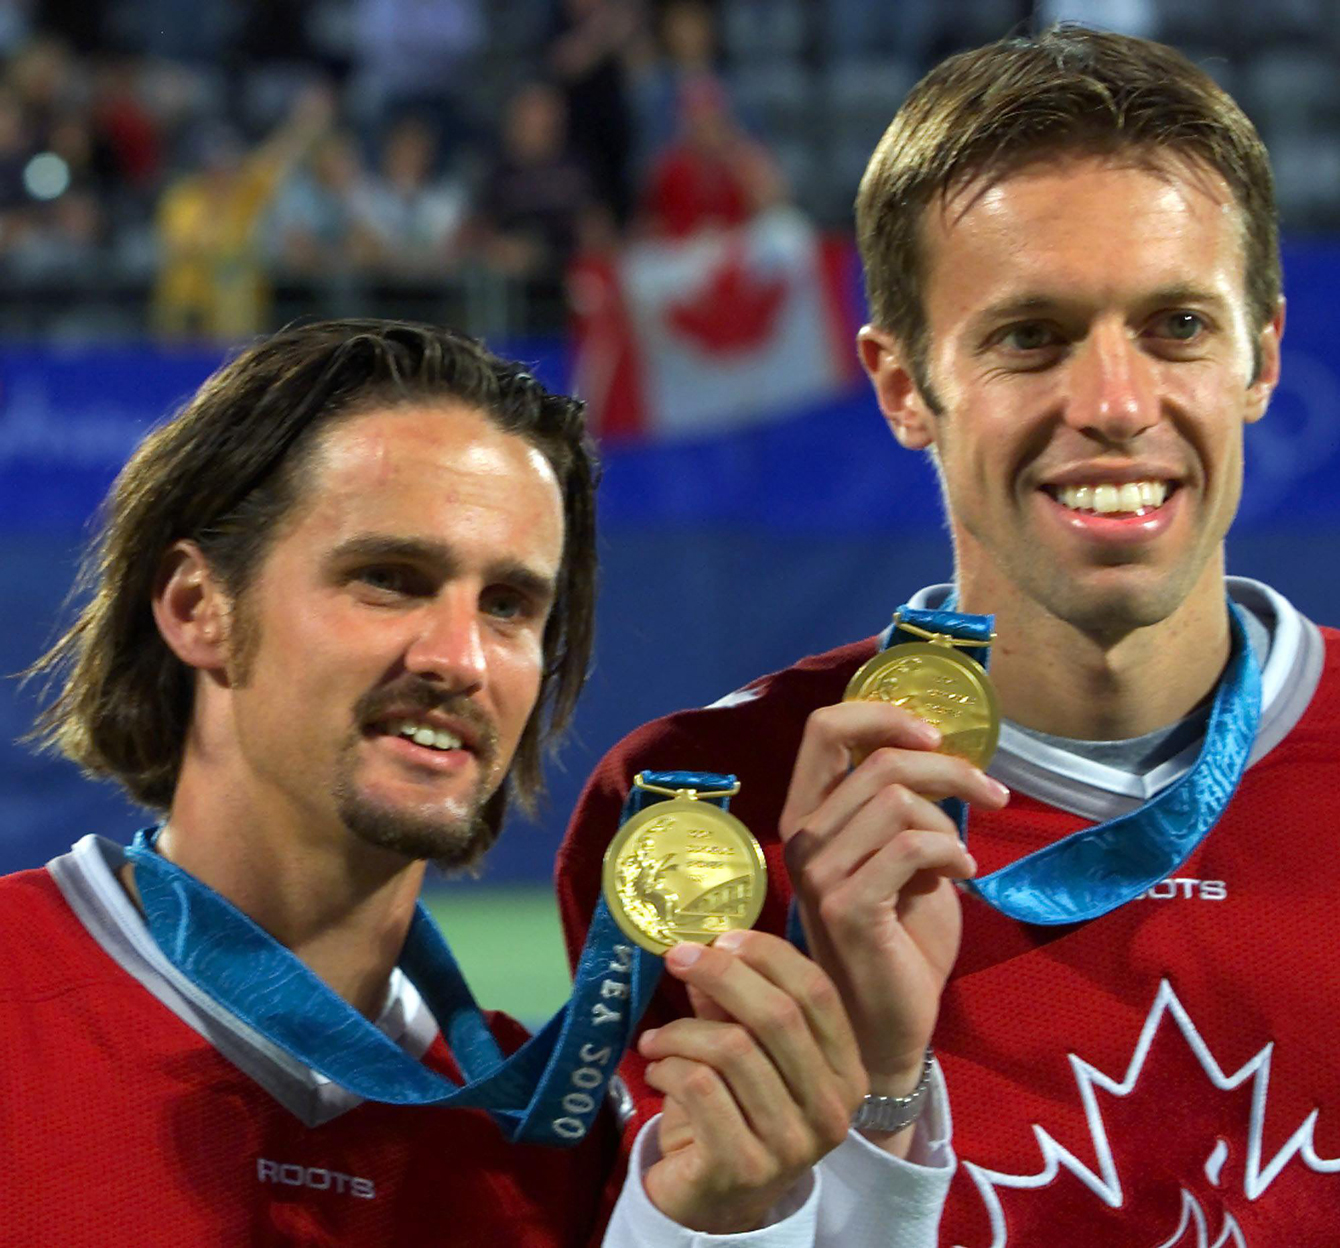 Sebastien Lareau (left) and Daniel Nestor of Canada hold up their gold medals after winning them in men's doubles tennis at the Olympic Games in Sydney Australia Wednesday Sept 27, 2000. (CP PHOTO/Tom Hanson)